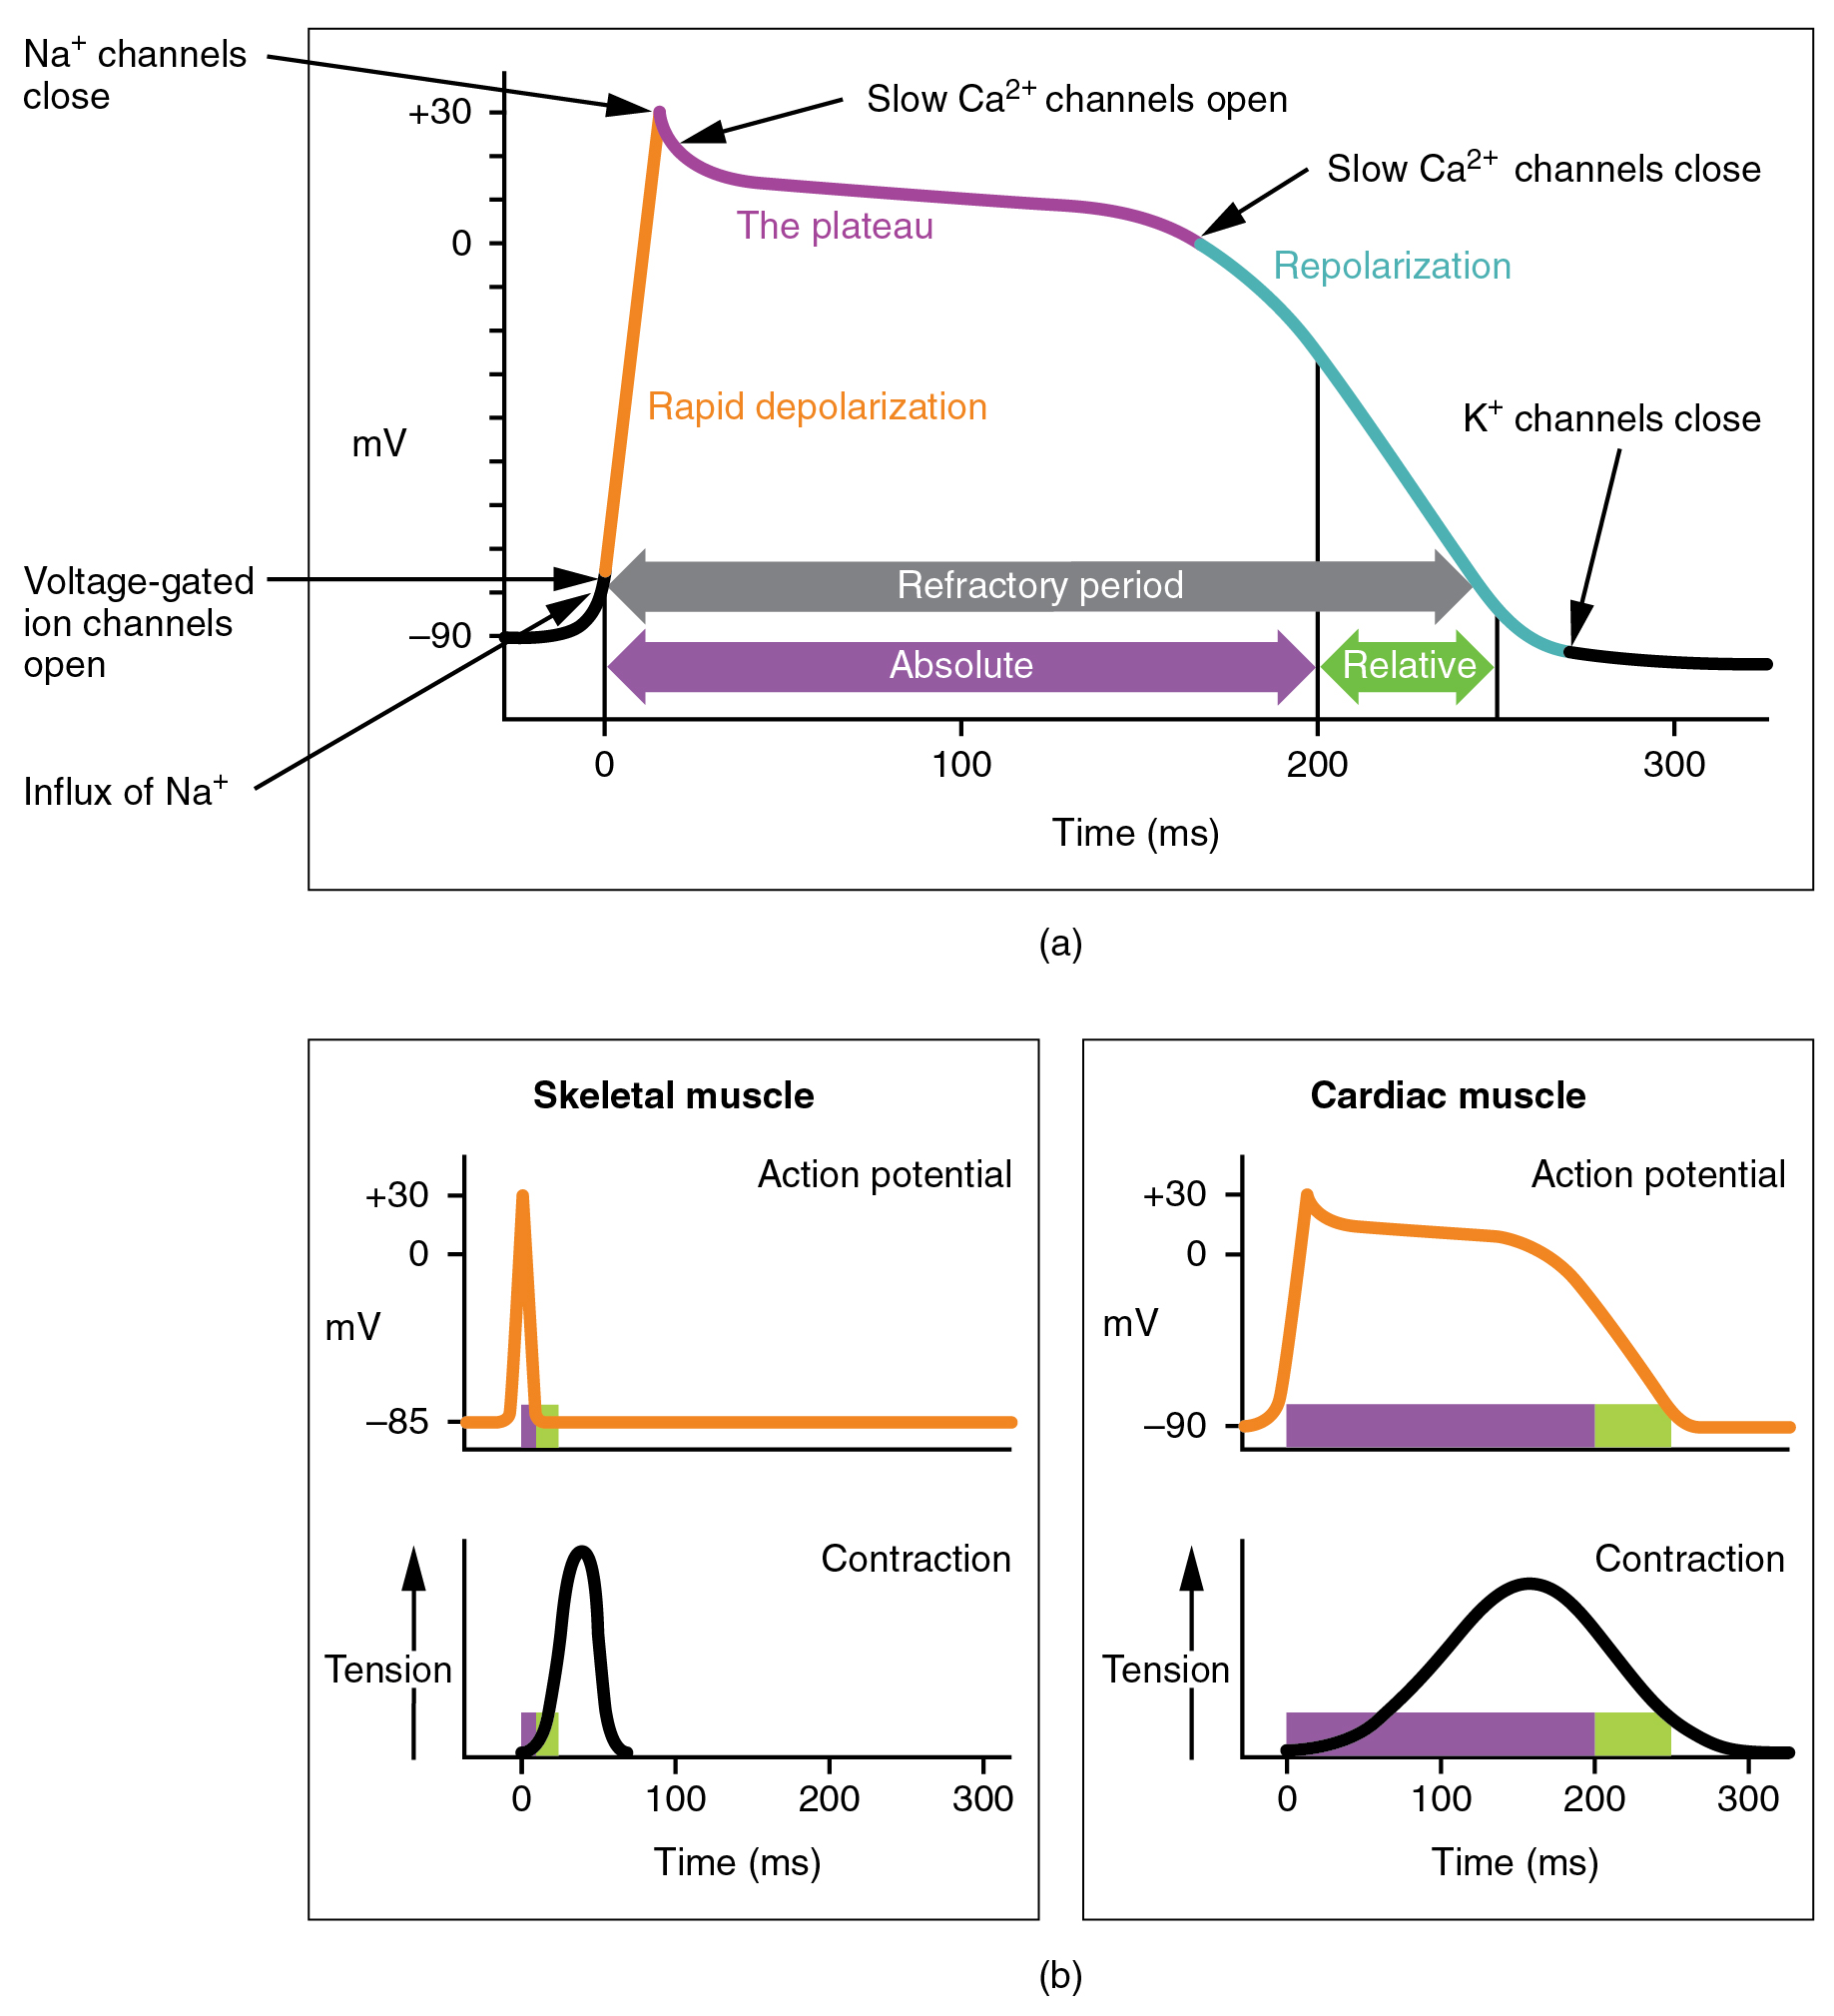 The top panel of this figure shows millivolts as a function of time with the various stages labeled. The bottom left panel shows action potential and tension as a function of time for skeletal muscle, and the bottom right panel shows the action potential and tension as a function of time for cardiac muscle.